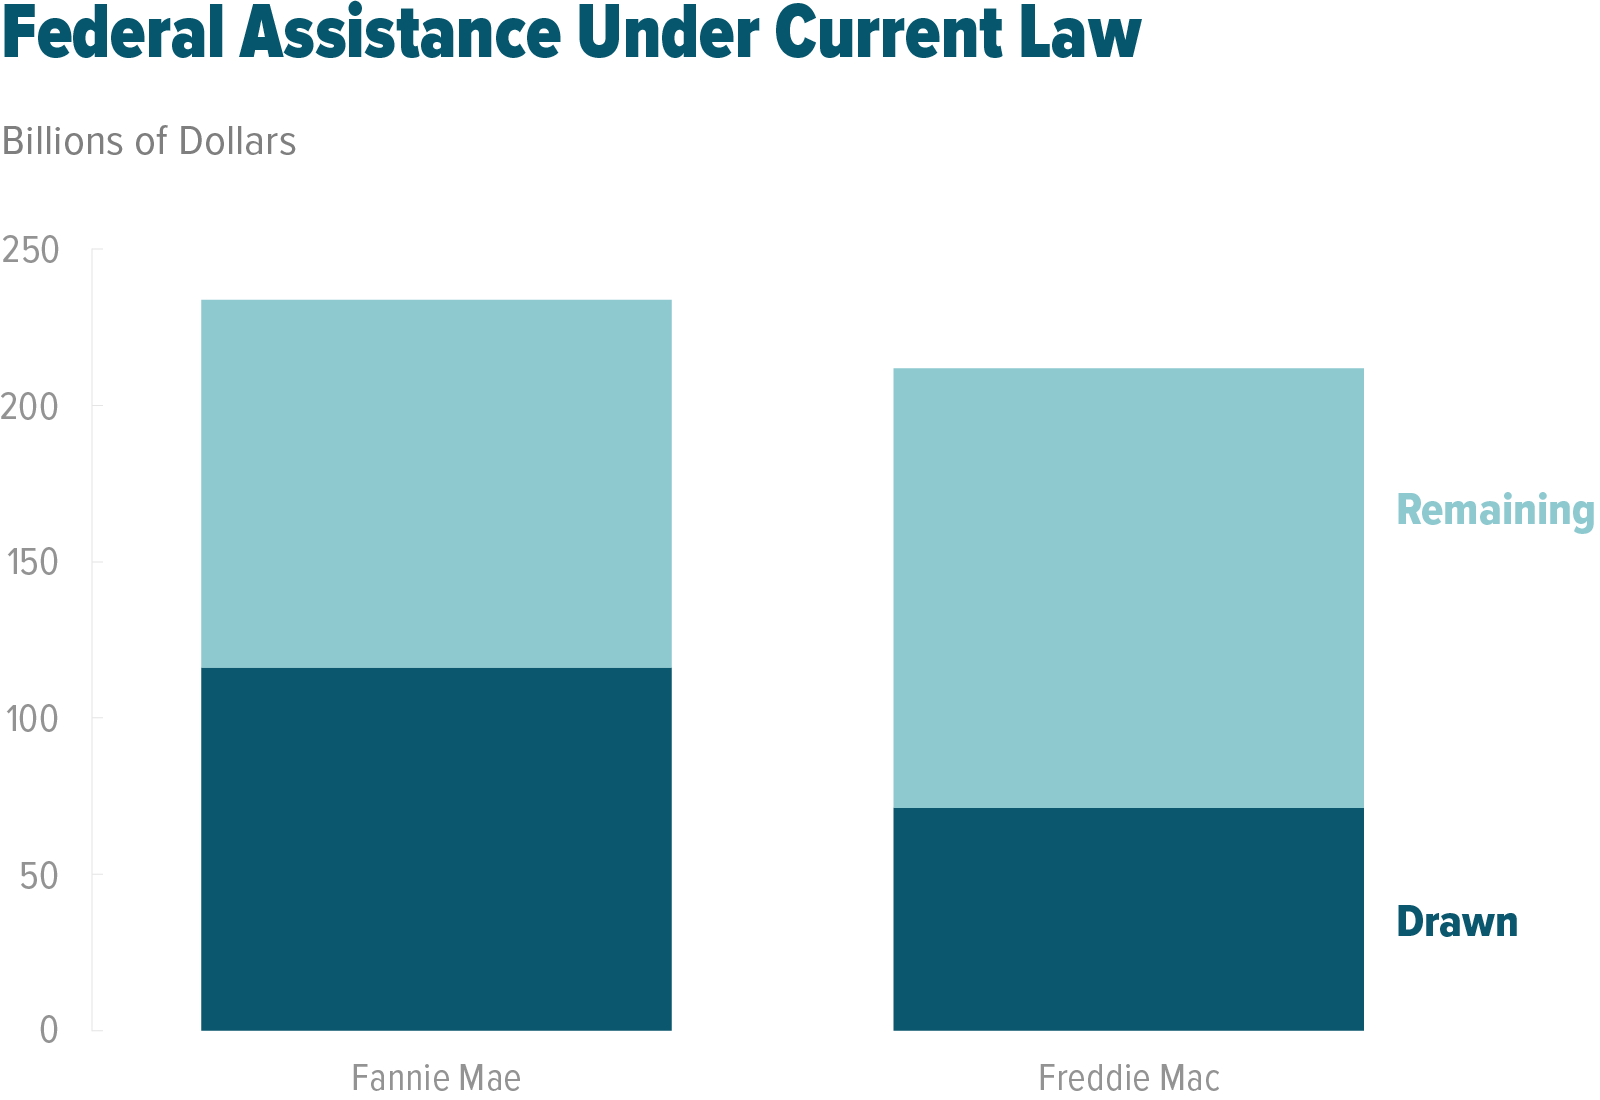 Federal Assistance Under Current Law